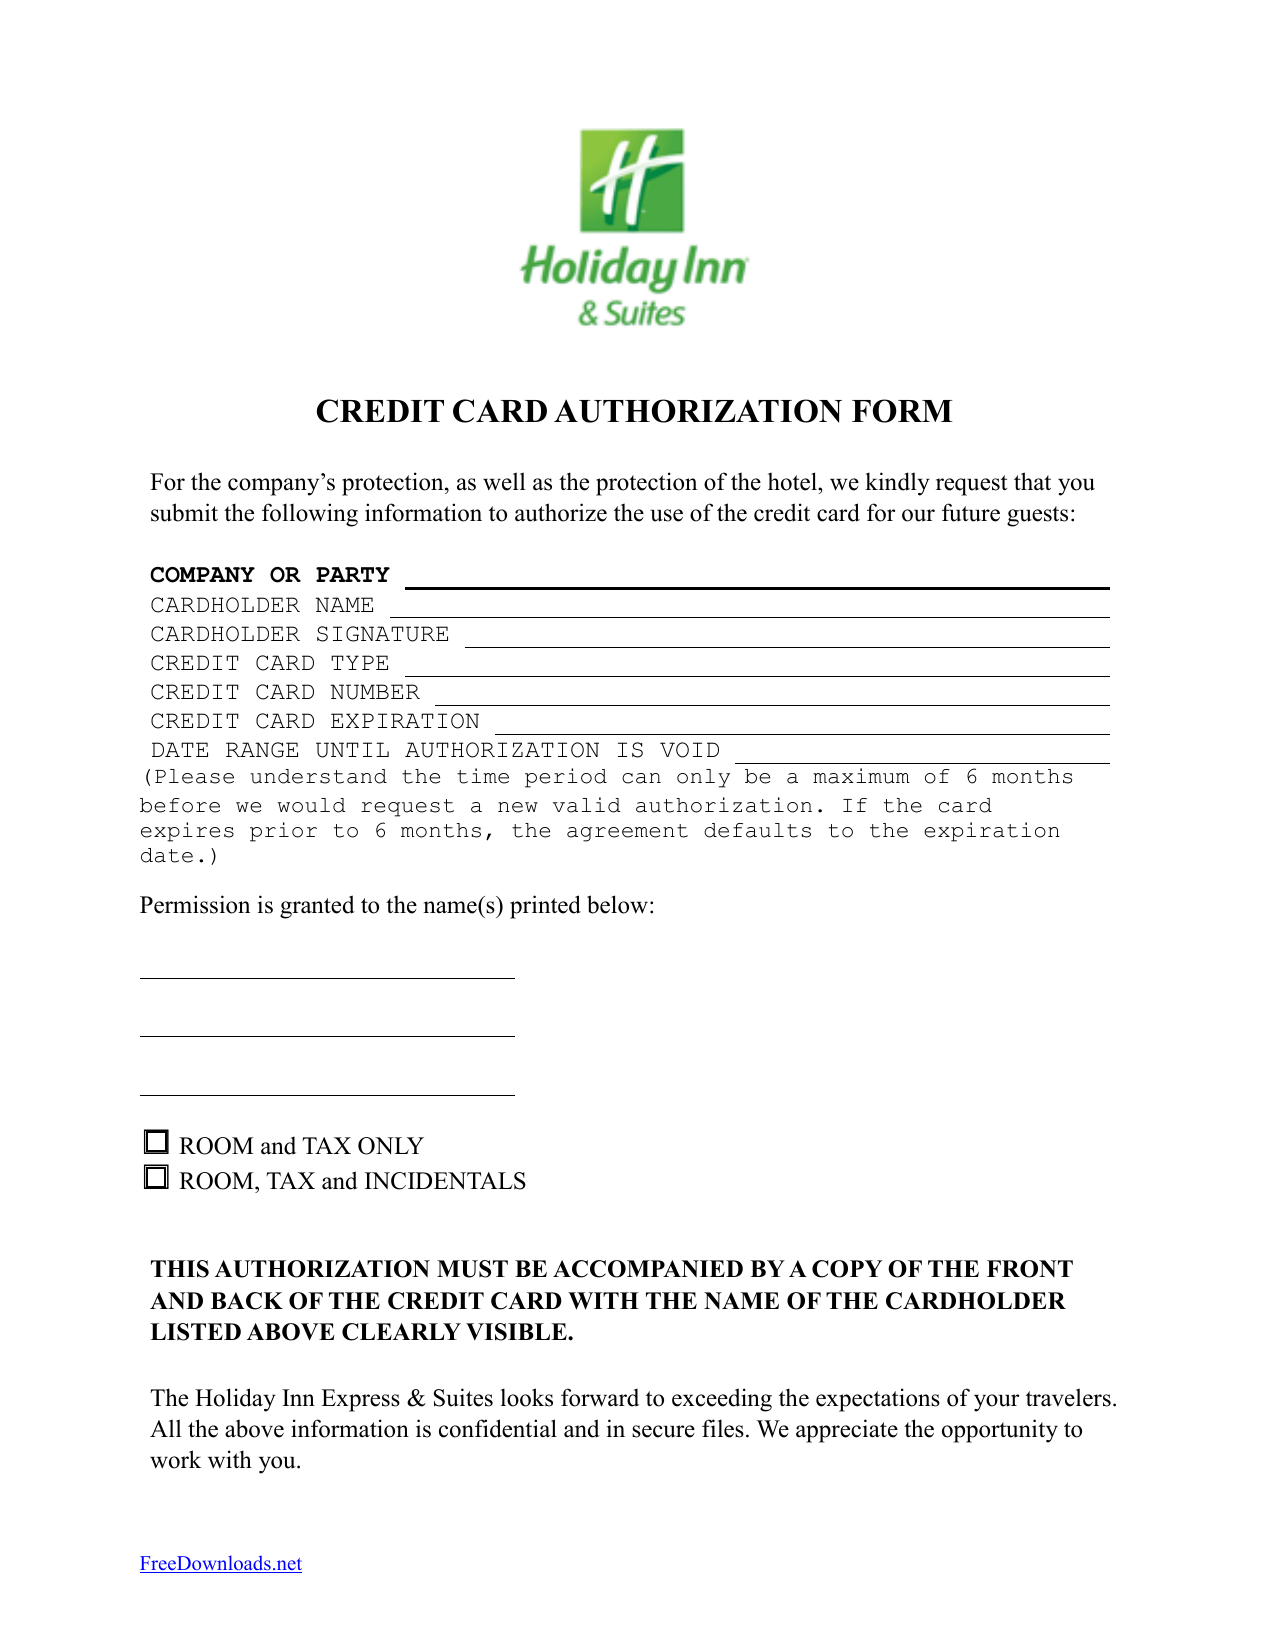 Download Holiday Inn Credit Card Authorization Form Template PDF Word